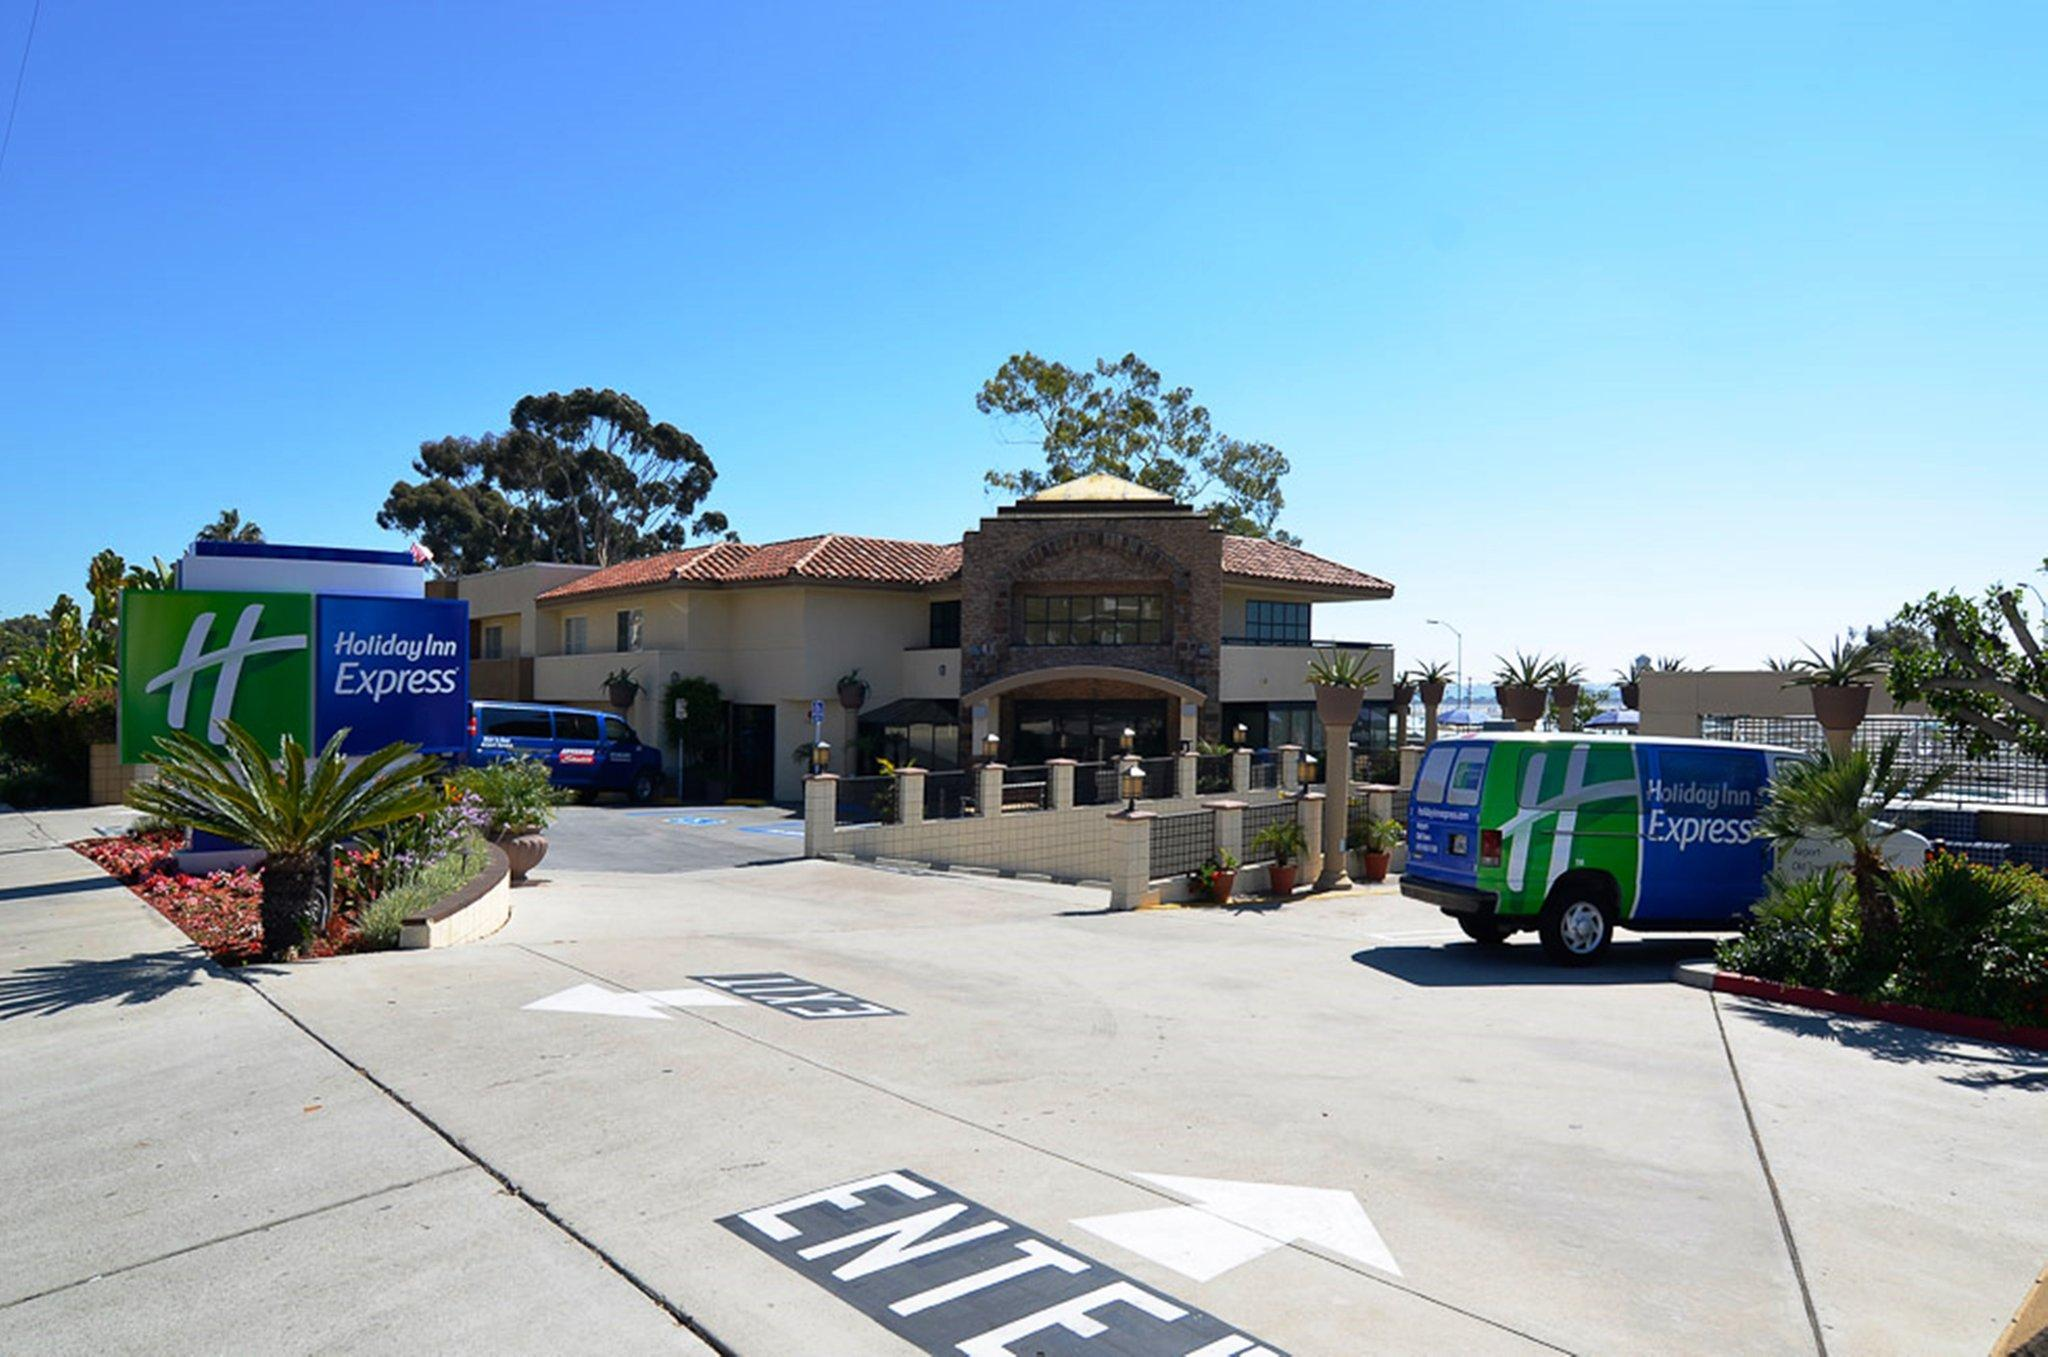 Holiday Inn Express Hotel And Suites San Diego Airport   Old Town